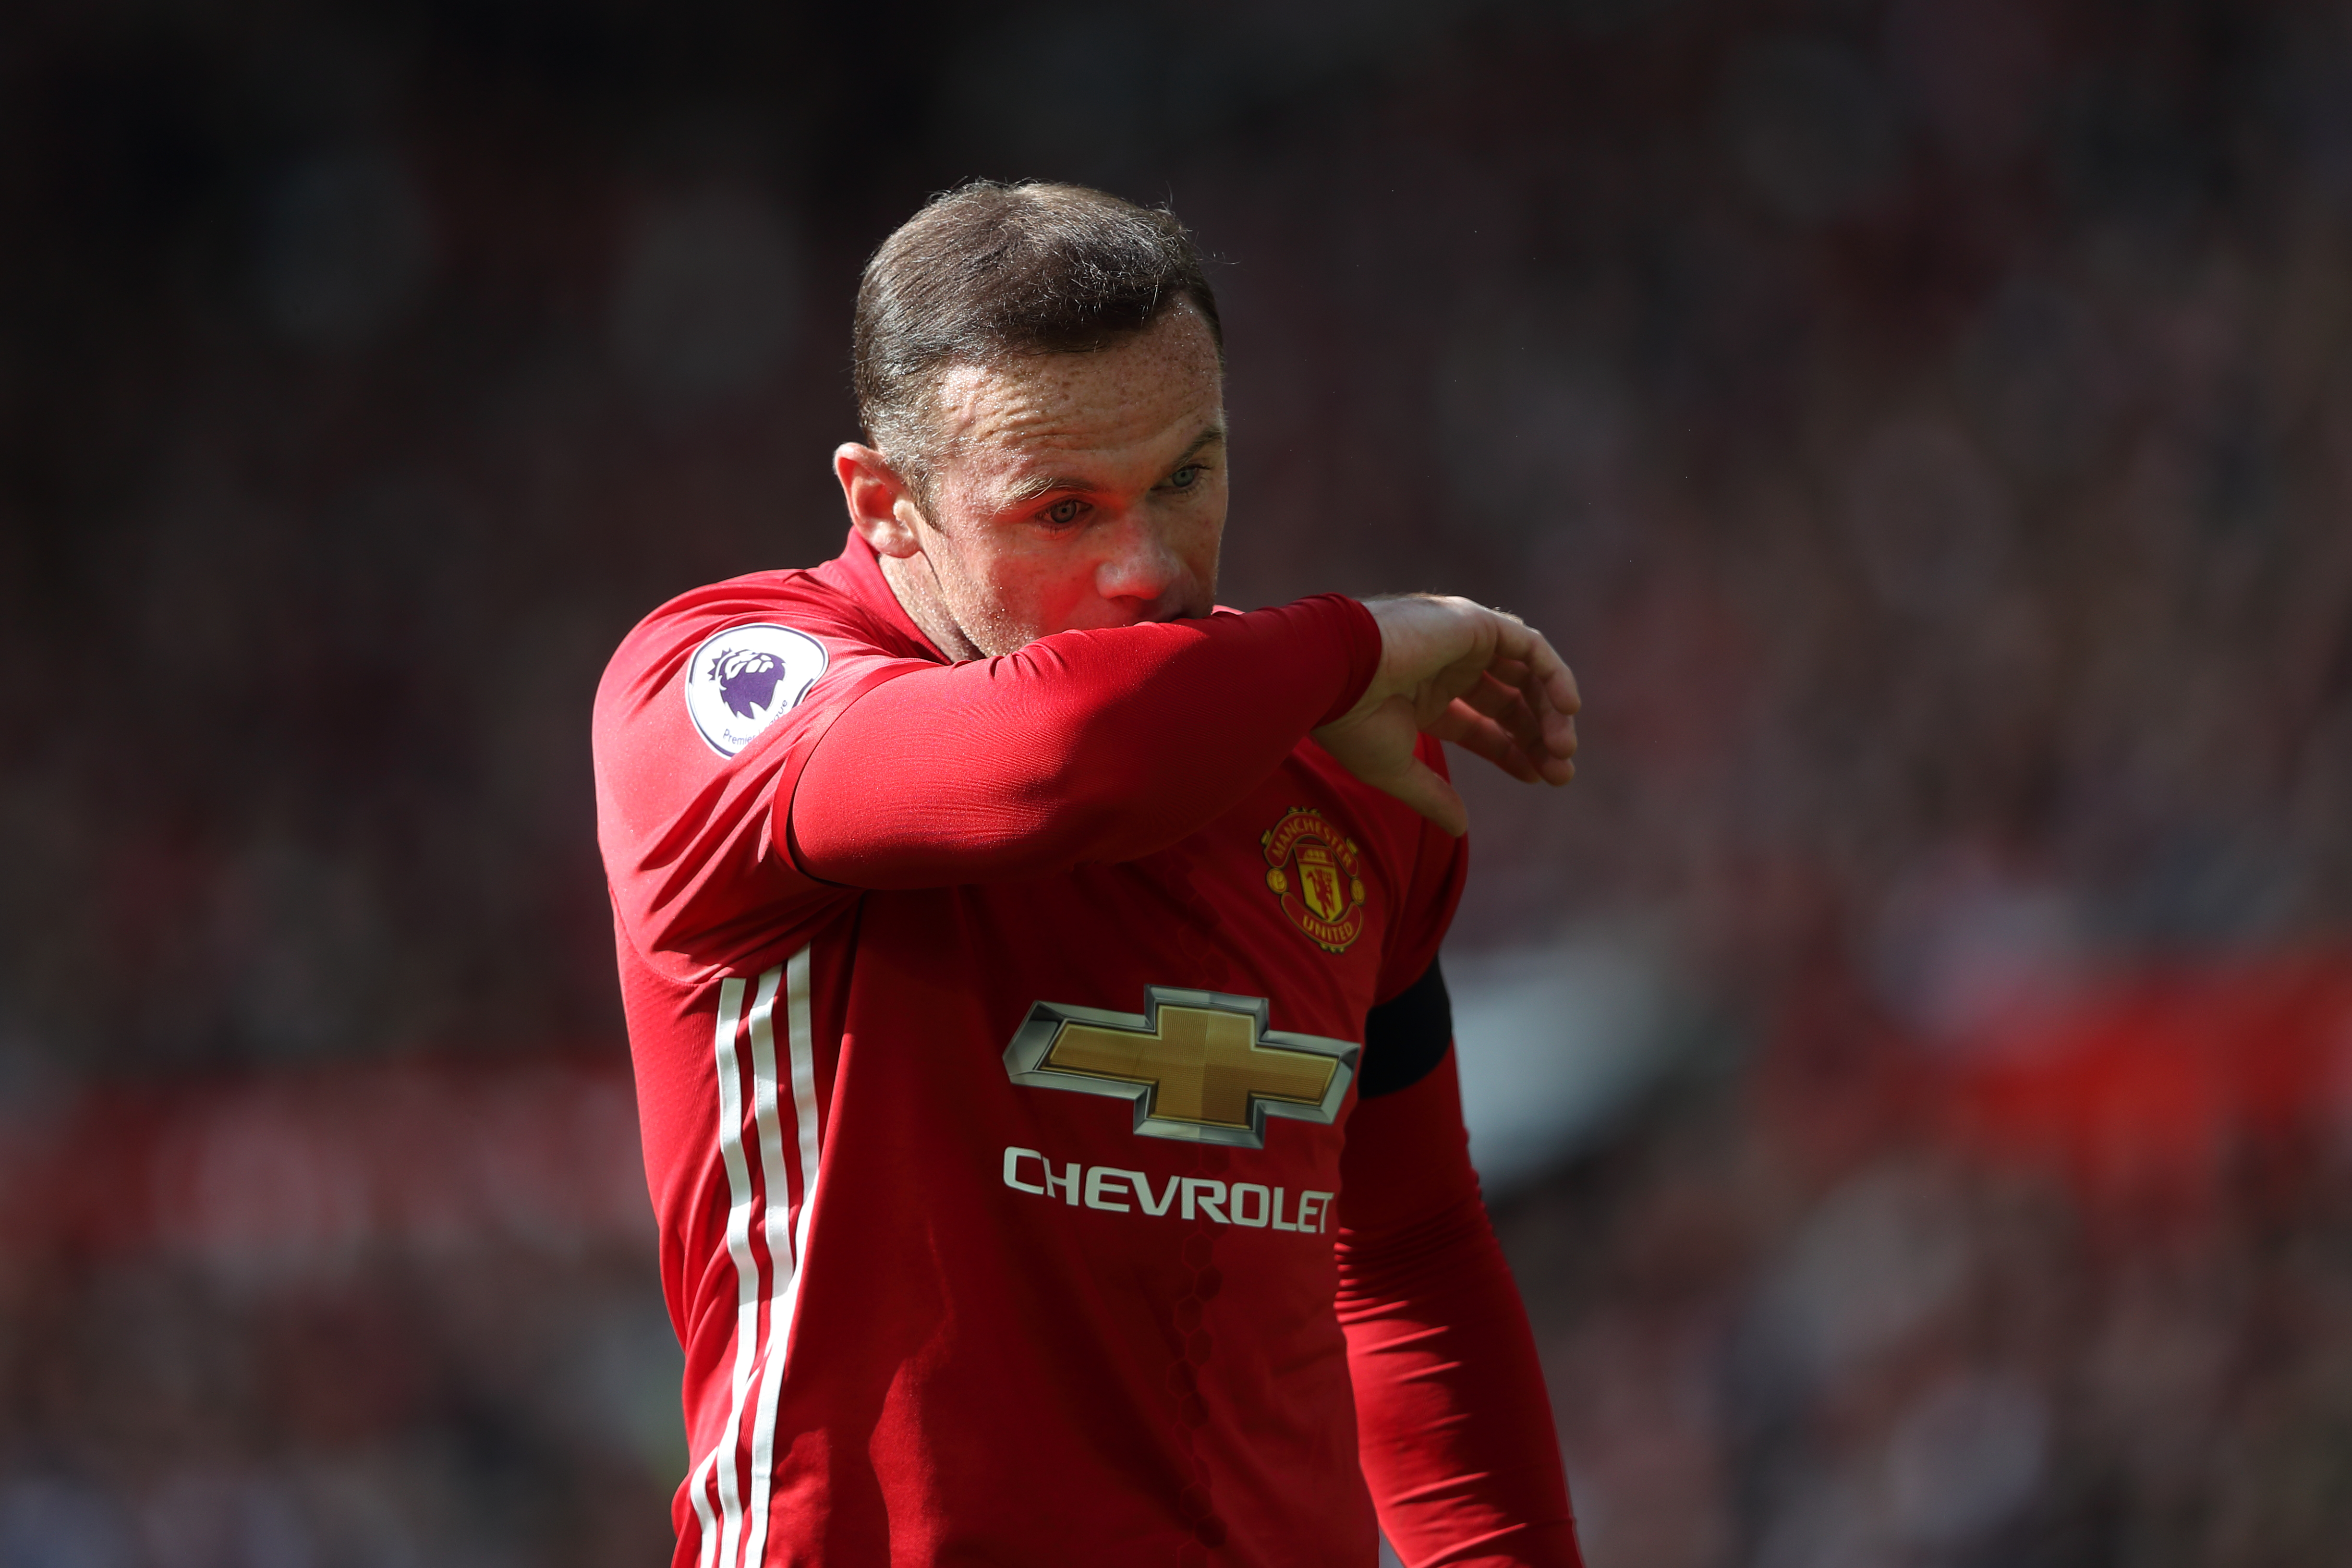 MANCHESTER, ENGLAND - OCTOBER 02: Wayne Rooney of Manchester United during the Premier League match between Manchester United and Stoke City at Old Trafford on October 2, 2016 in Manchester, England. (Photo by Matthew Ashton - AMA/Getty Images)